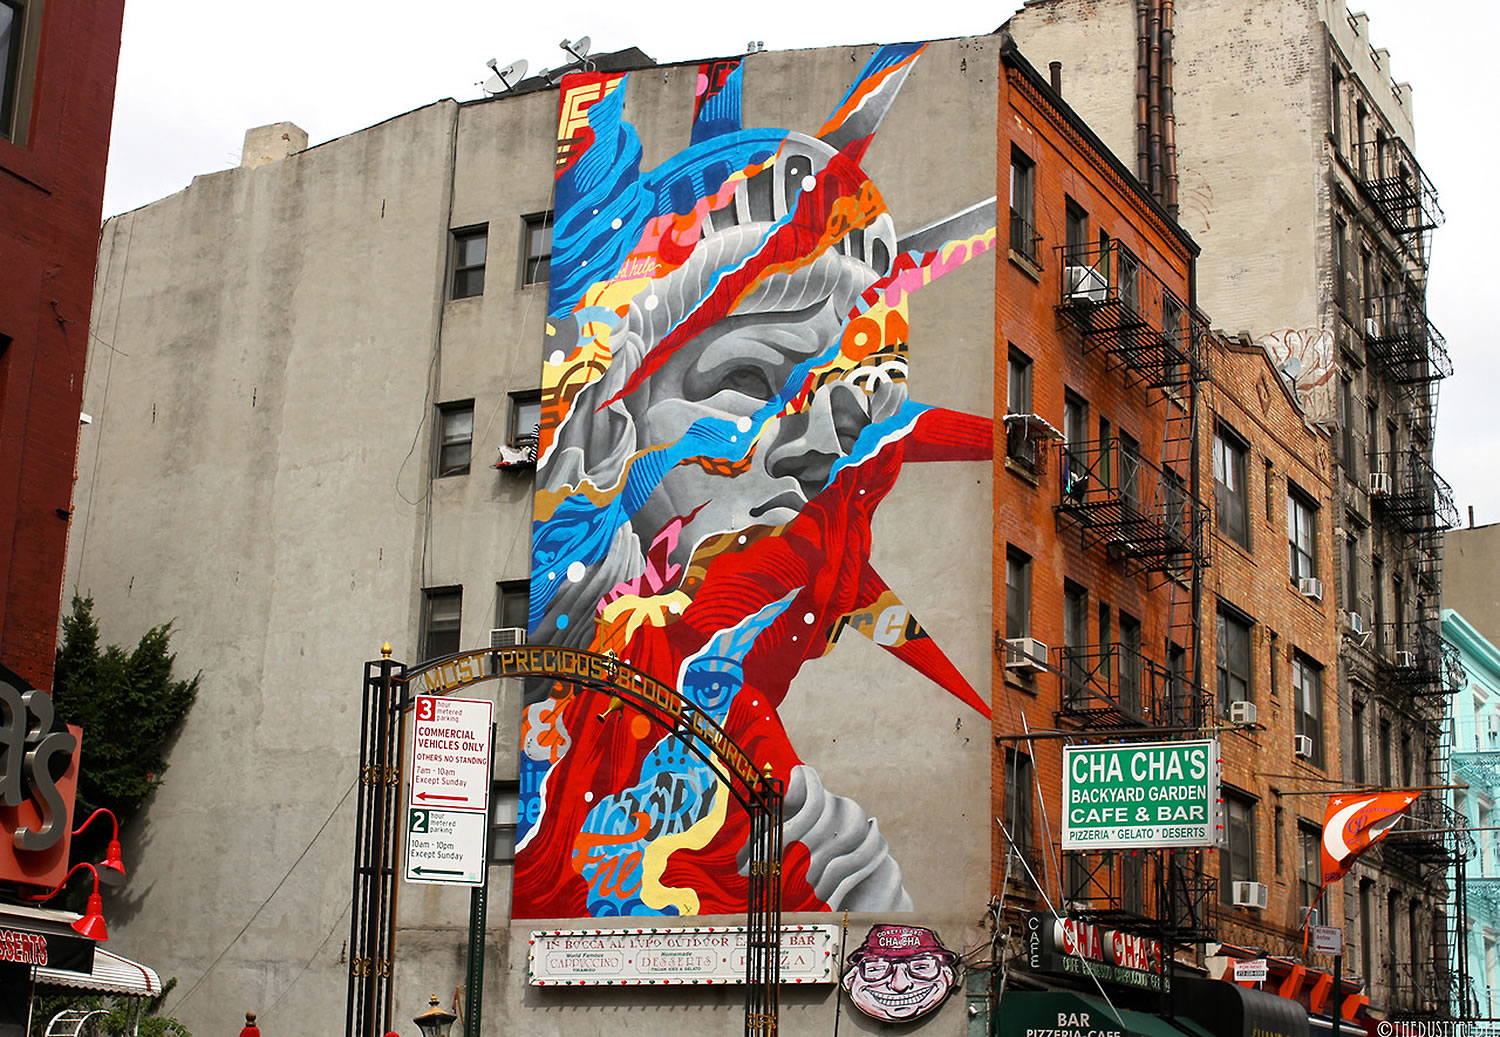 statue of liberty graffiti by Tristan Eaton